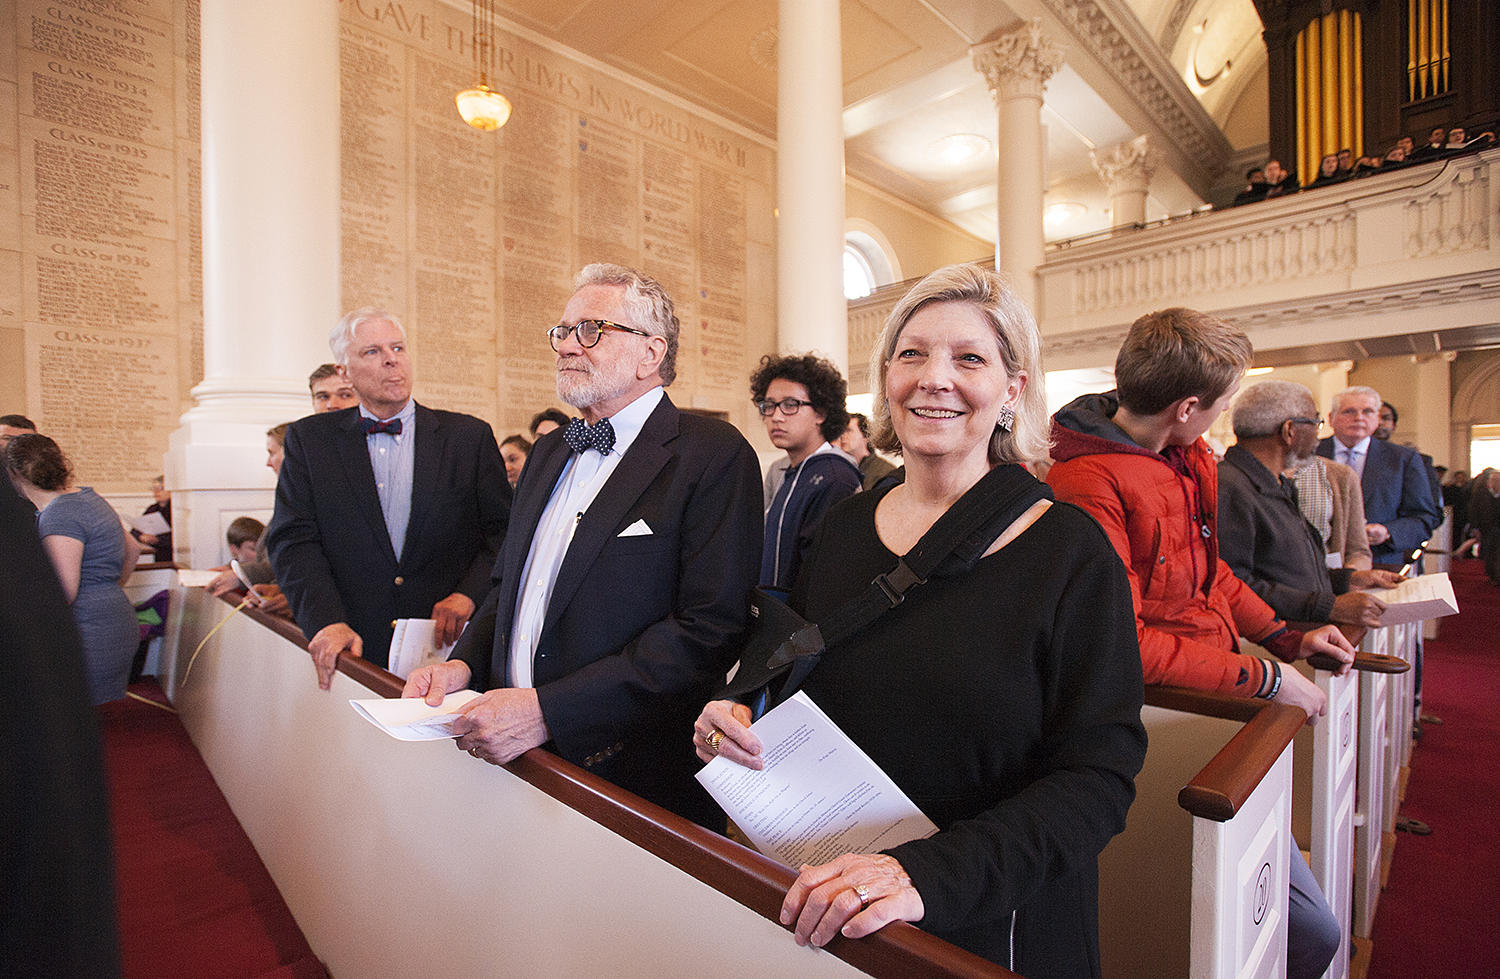 James and Ann Lawson attend Sunday service in the Memorial Church sanctuary